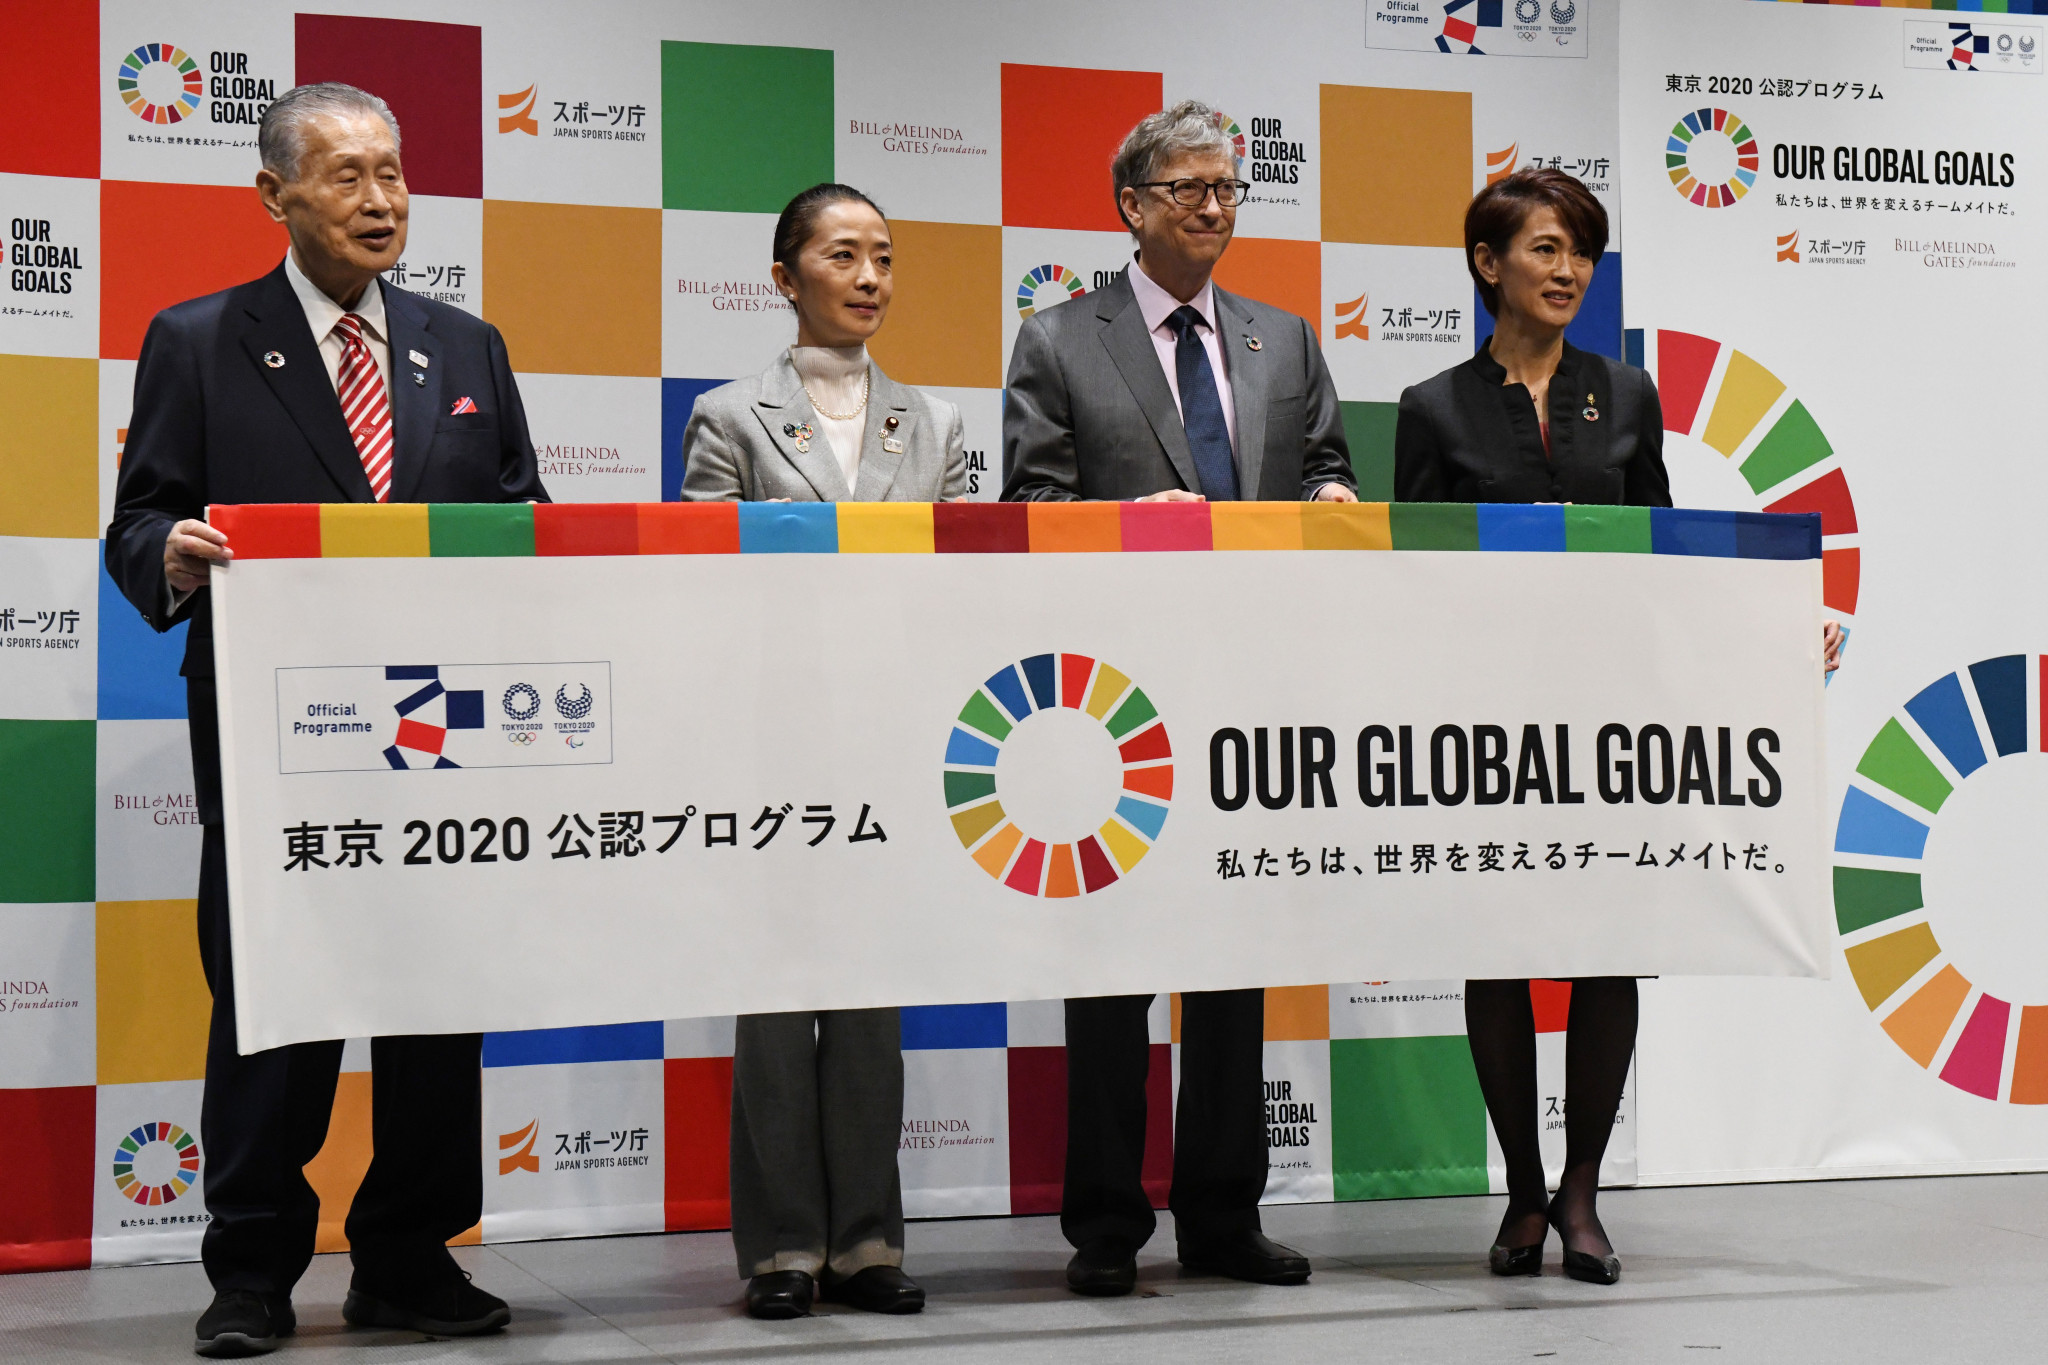 Tokyo 2020 President Yoshiro Mori joined Bill Gates to announce the partnership ©Getty Images